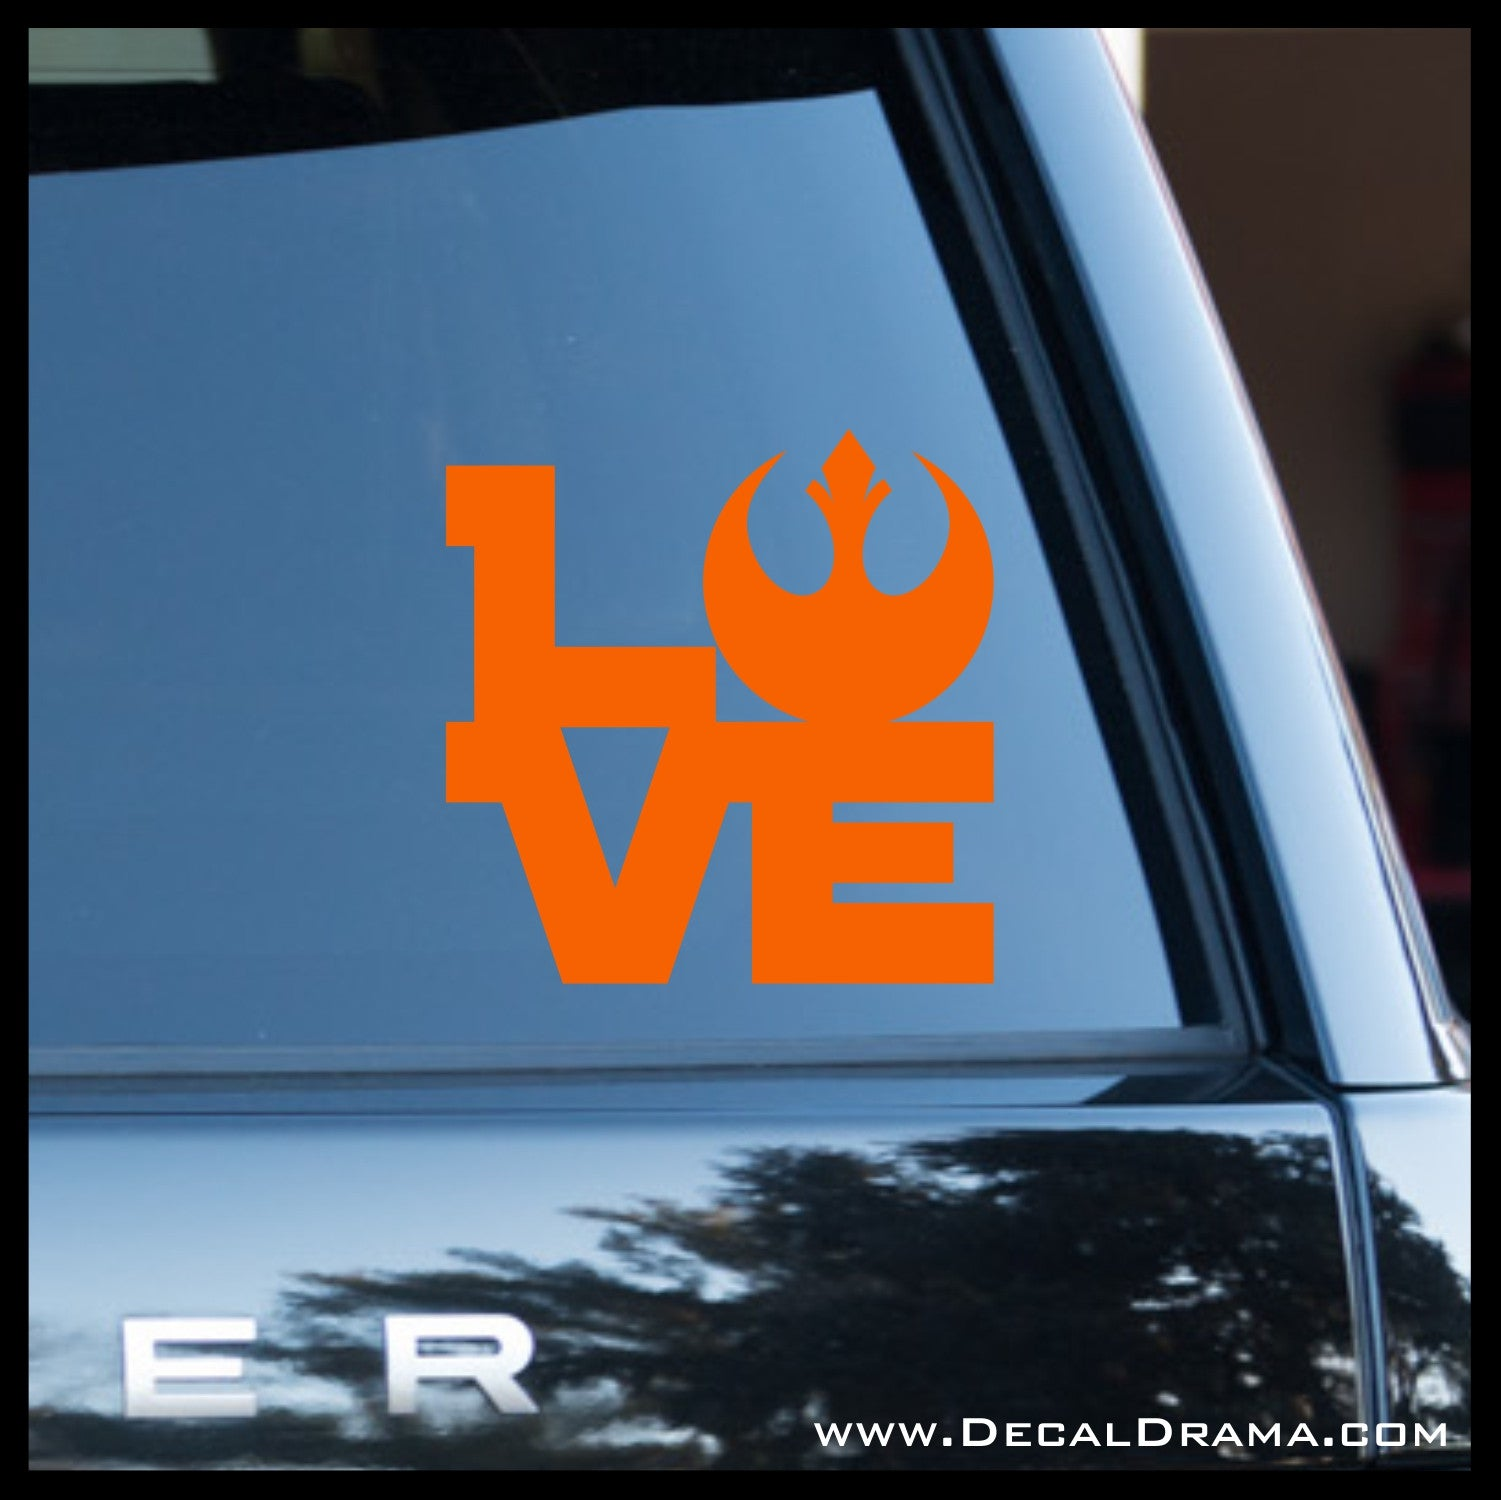 Love the Rebel Alliance, Star Wars-Inspired Fan Art Vinyl Wall Decal